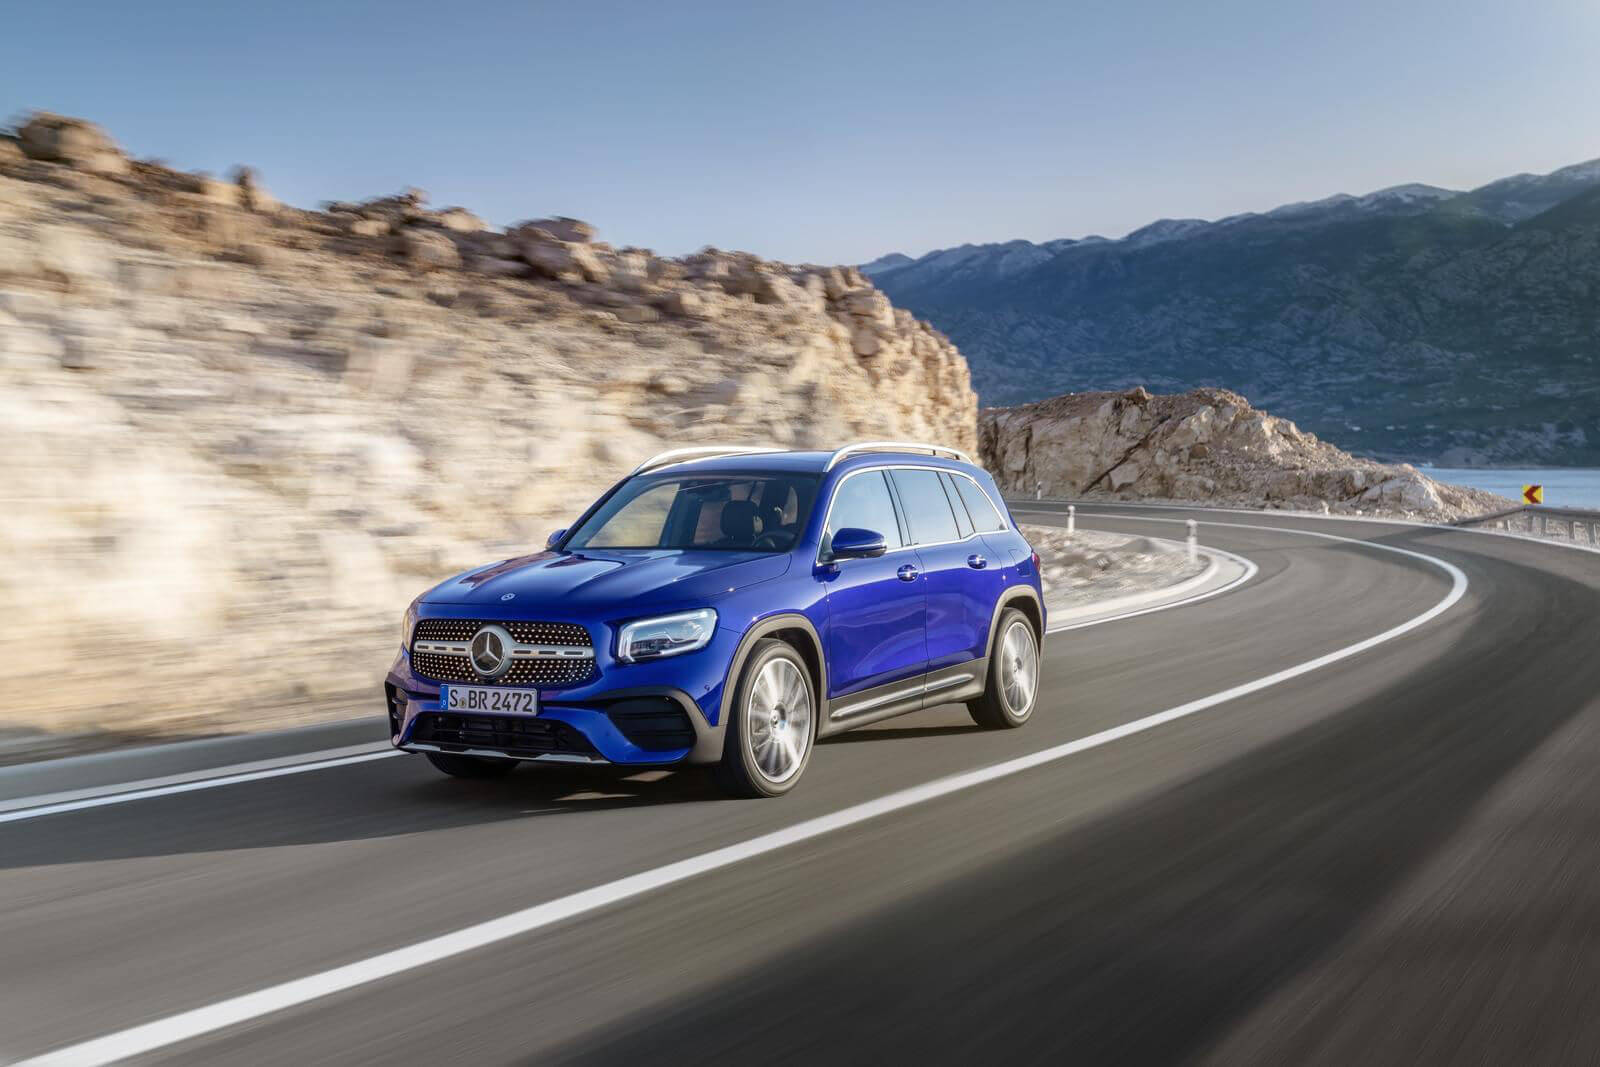 The new Mercedes-Benz GLB: The Luxury 7-Seater family off-roader. Is this what we have been looking